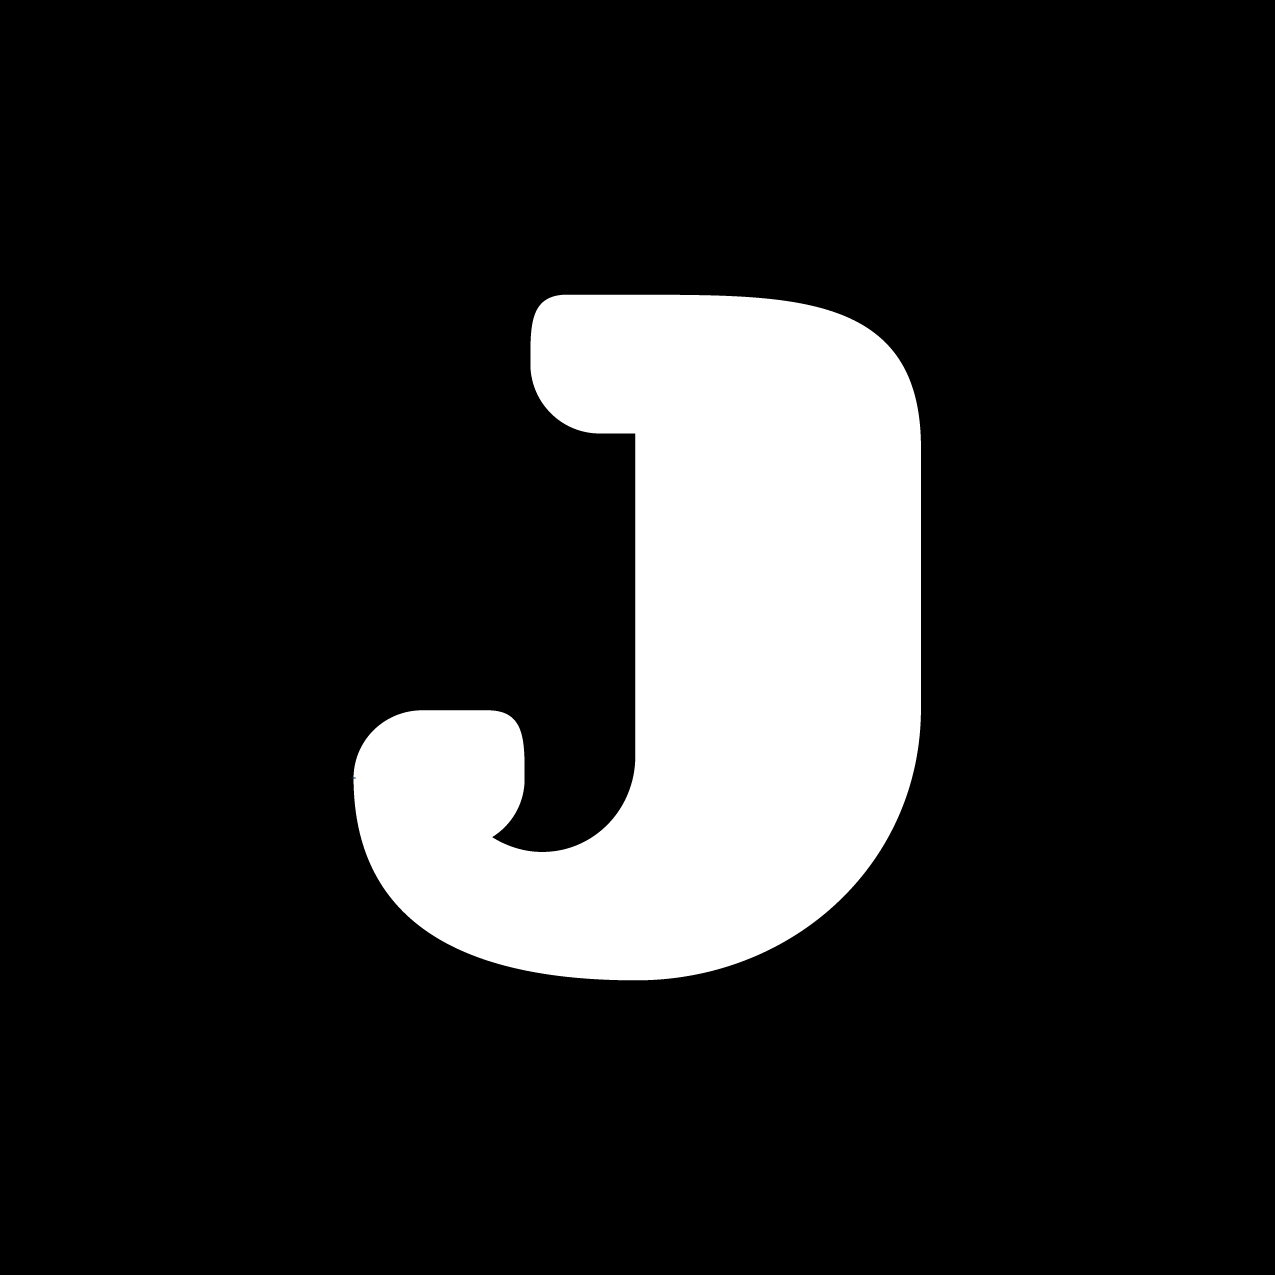 Letter J3 Design by Furia